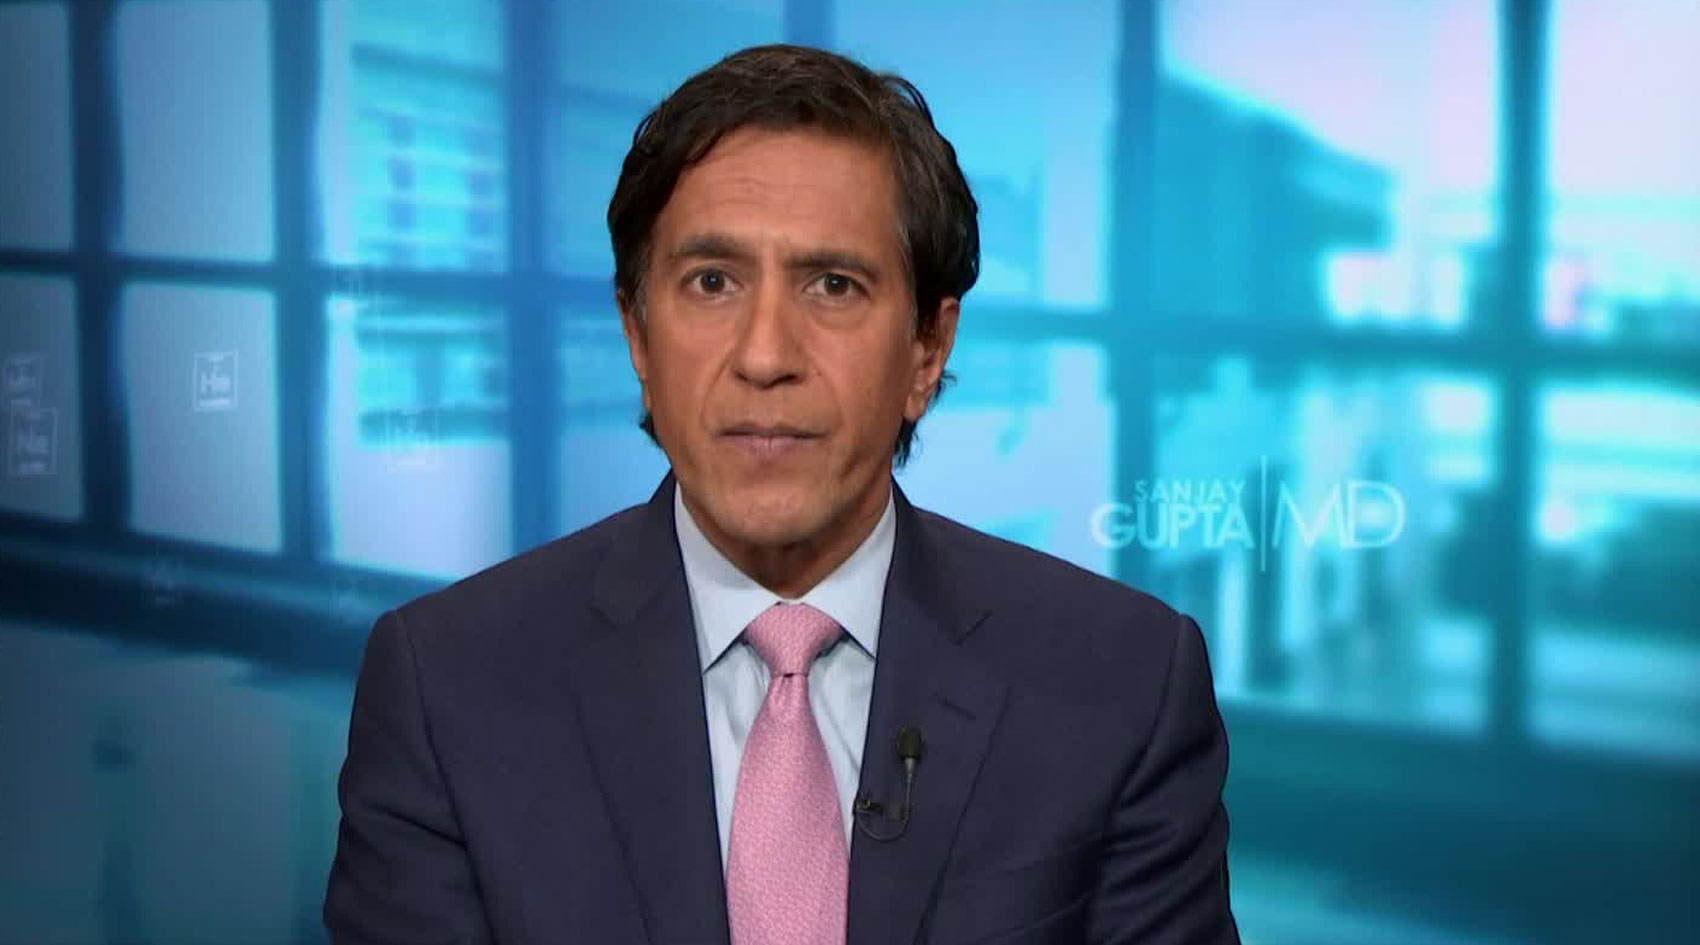 Dr. Sanjay Gupta, CNN chief medical correspondent, on December 3.